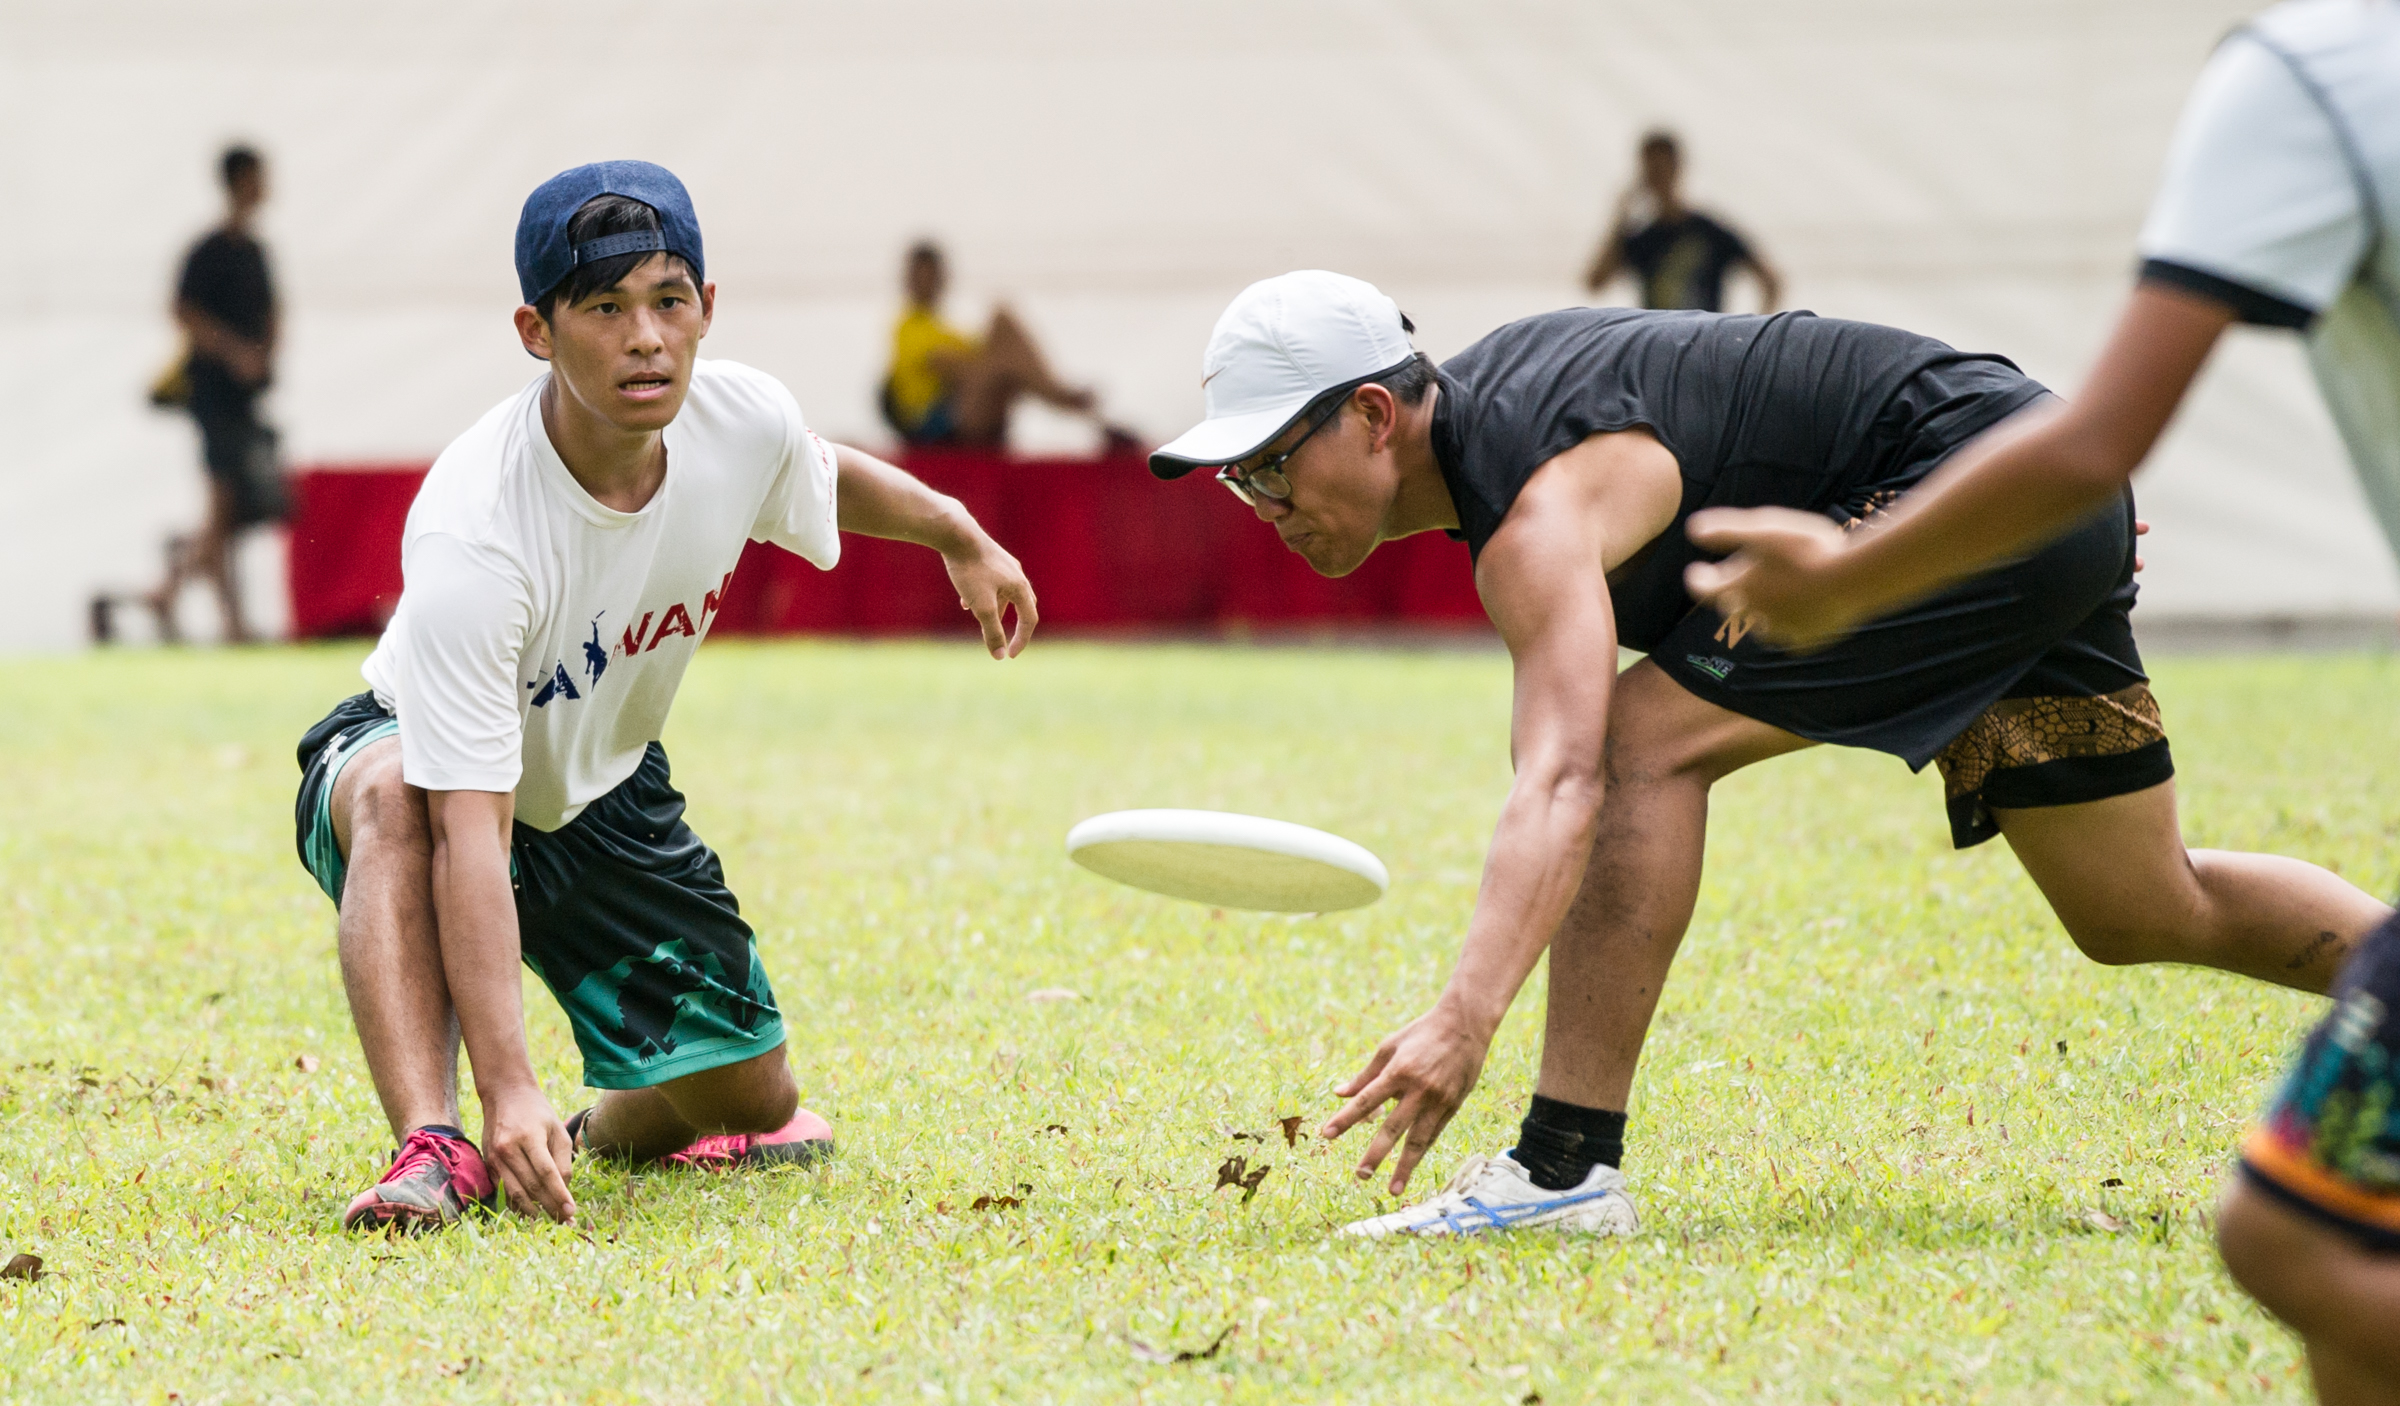 A player passes a frisbee past an opponent during a friendly at Ang Mo Kio Central.